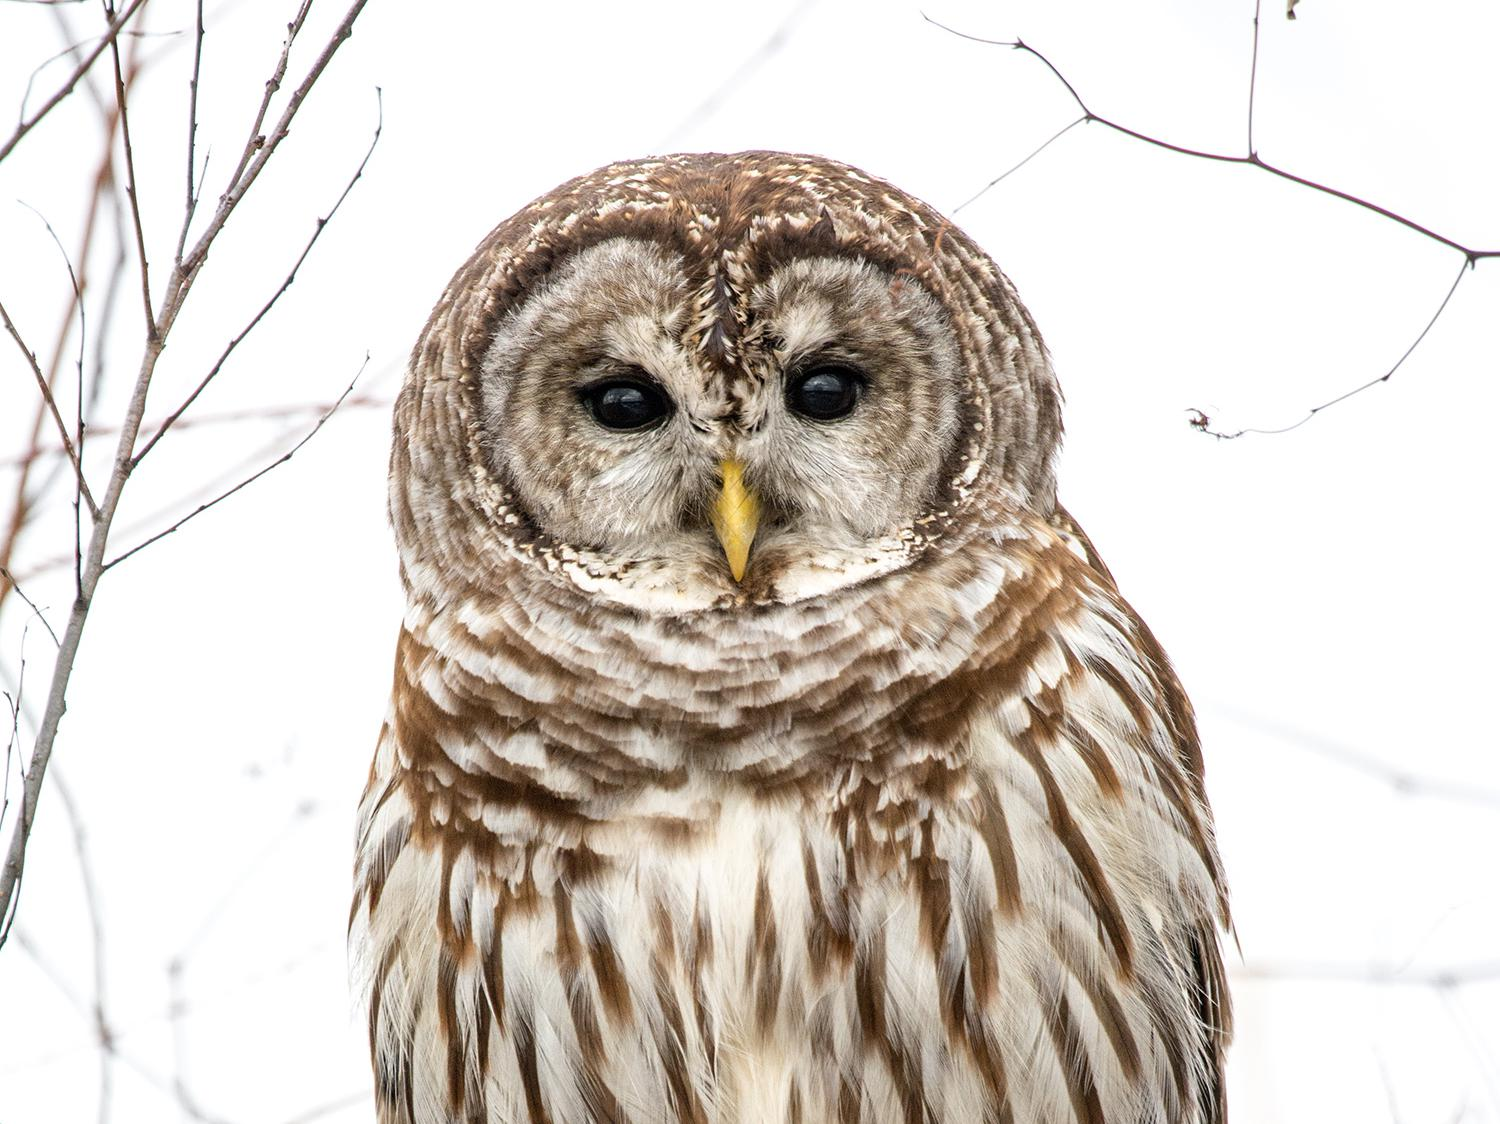 The piercing stare of the Barred Owl can catch a hunter's attention.  (Photo by Bill Stripling)